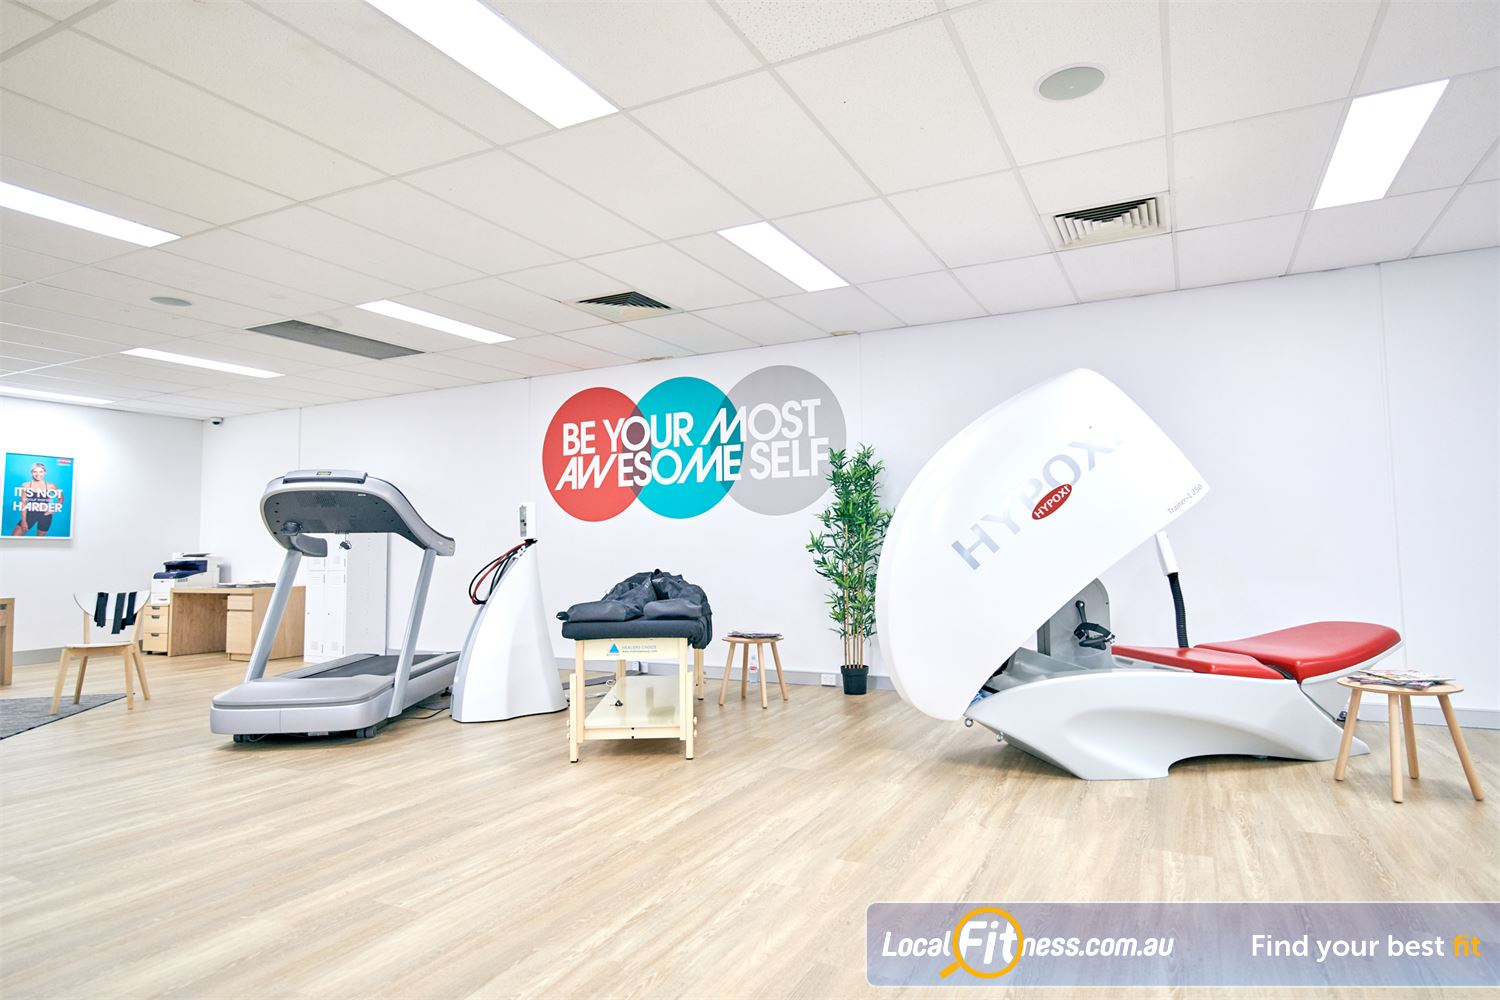 HYPOXI Weight Loss Jindalee Our HYPOXI method can help with cellulite reduction in Jindalee.